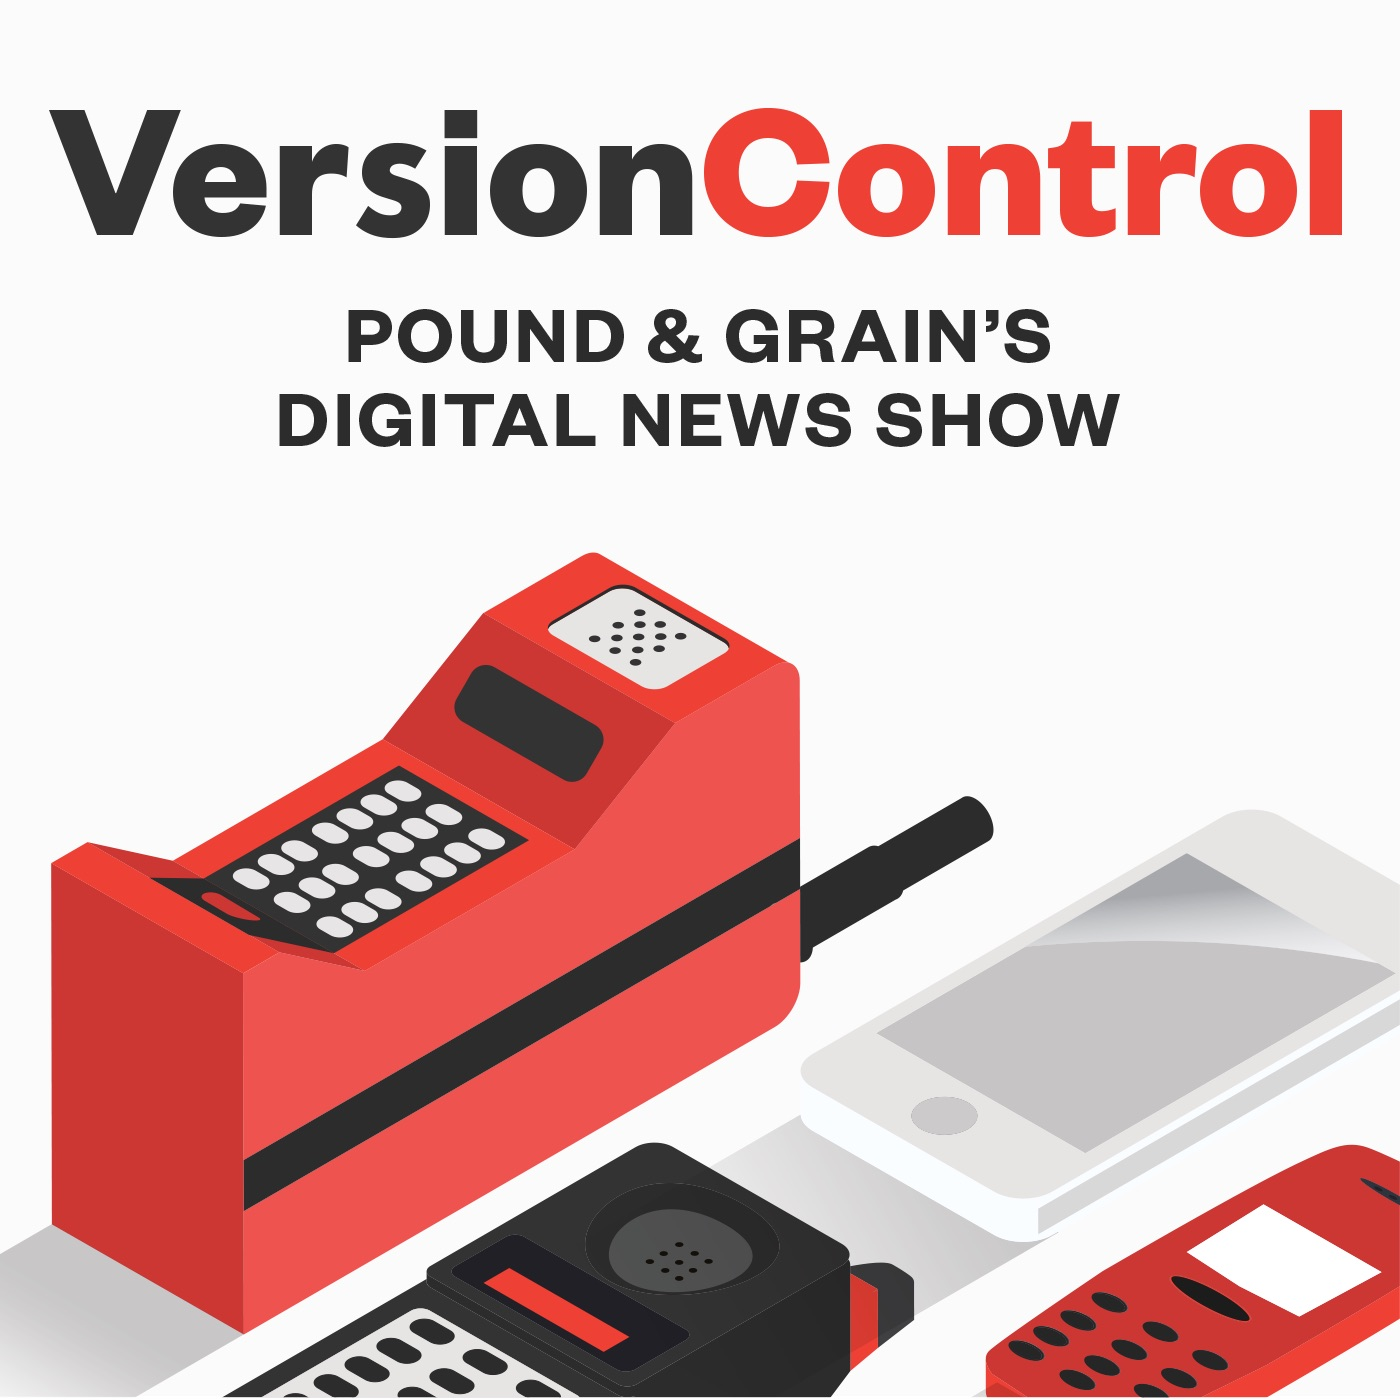 Version Control: Pound & Grain's Digital News Show